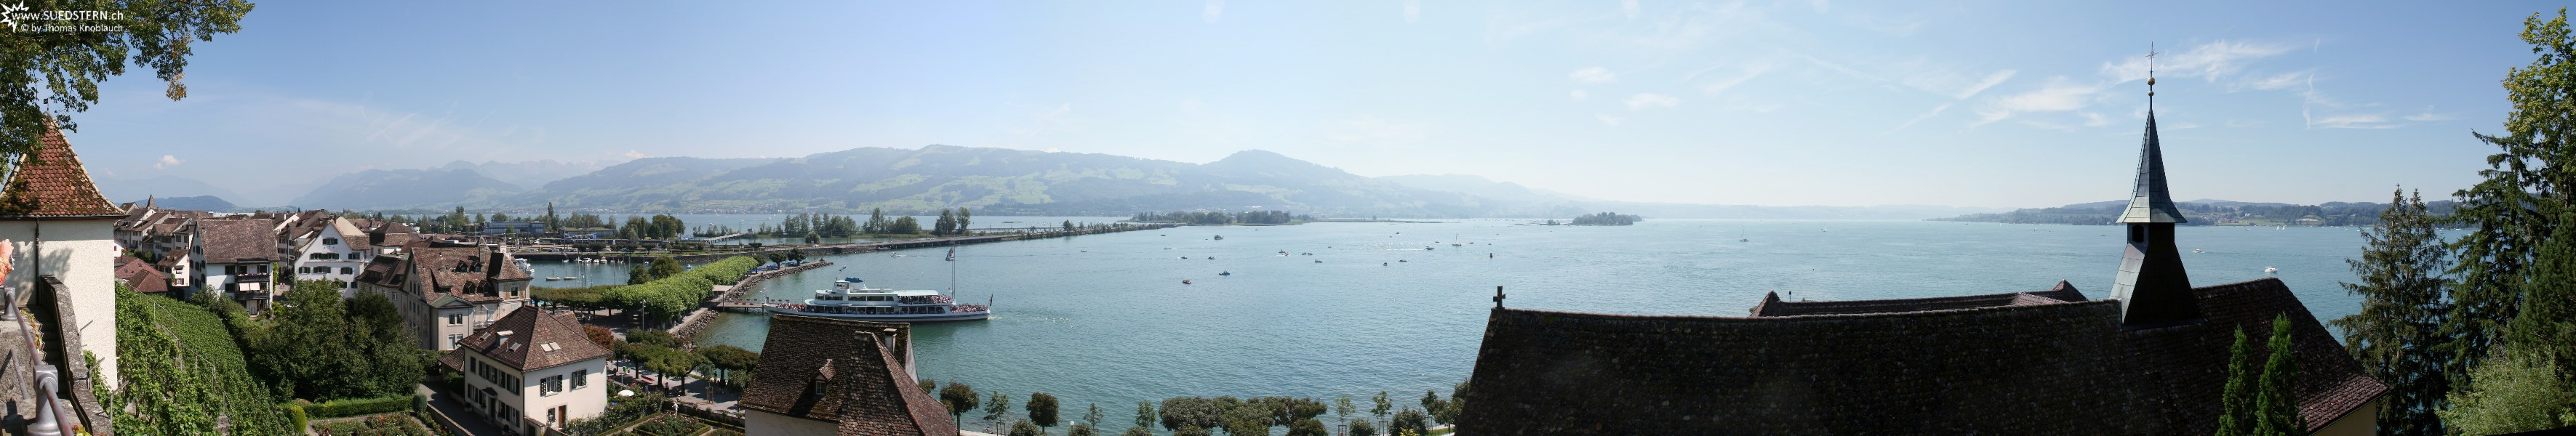 2007-08-05 - Panoramic view from Schloss Rapperswil